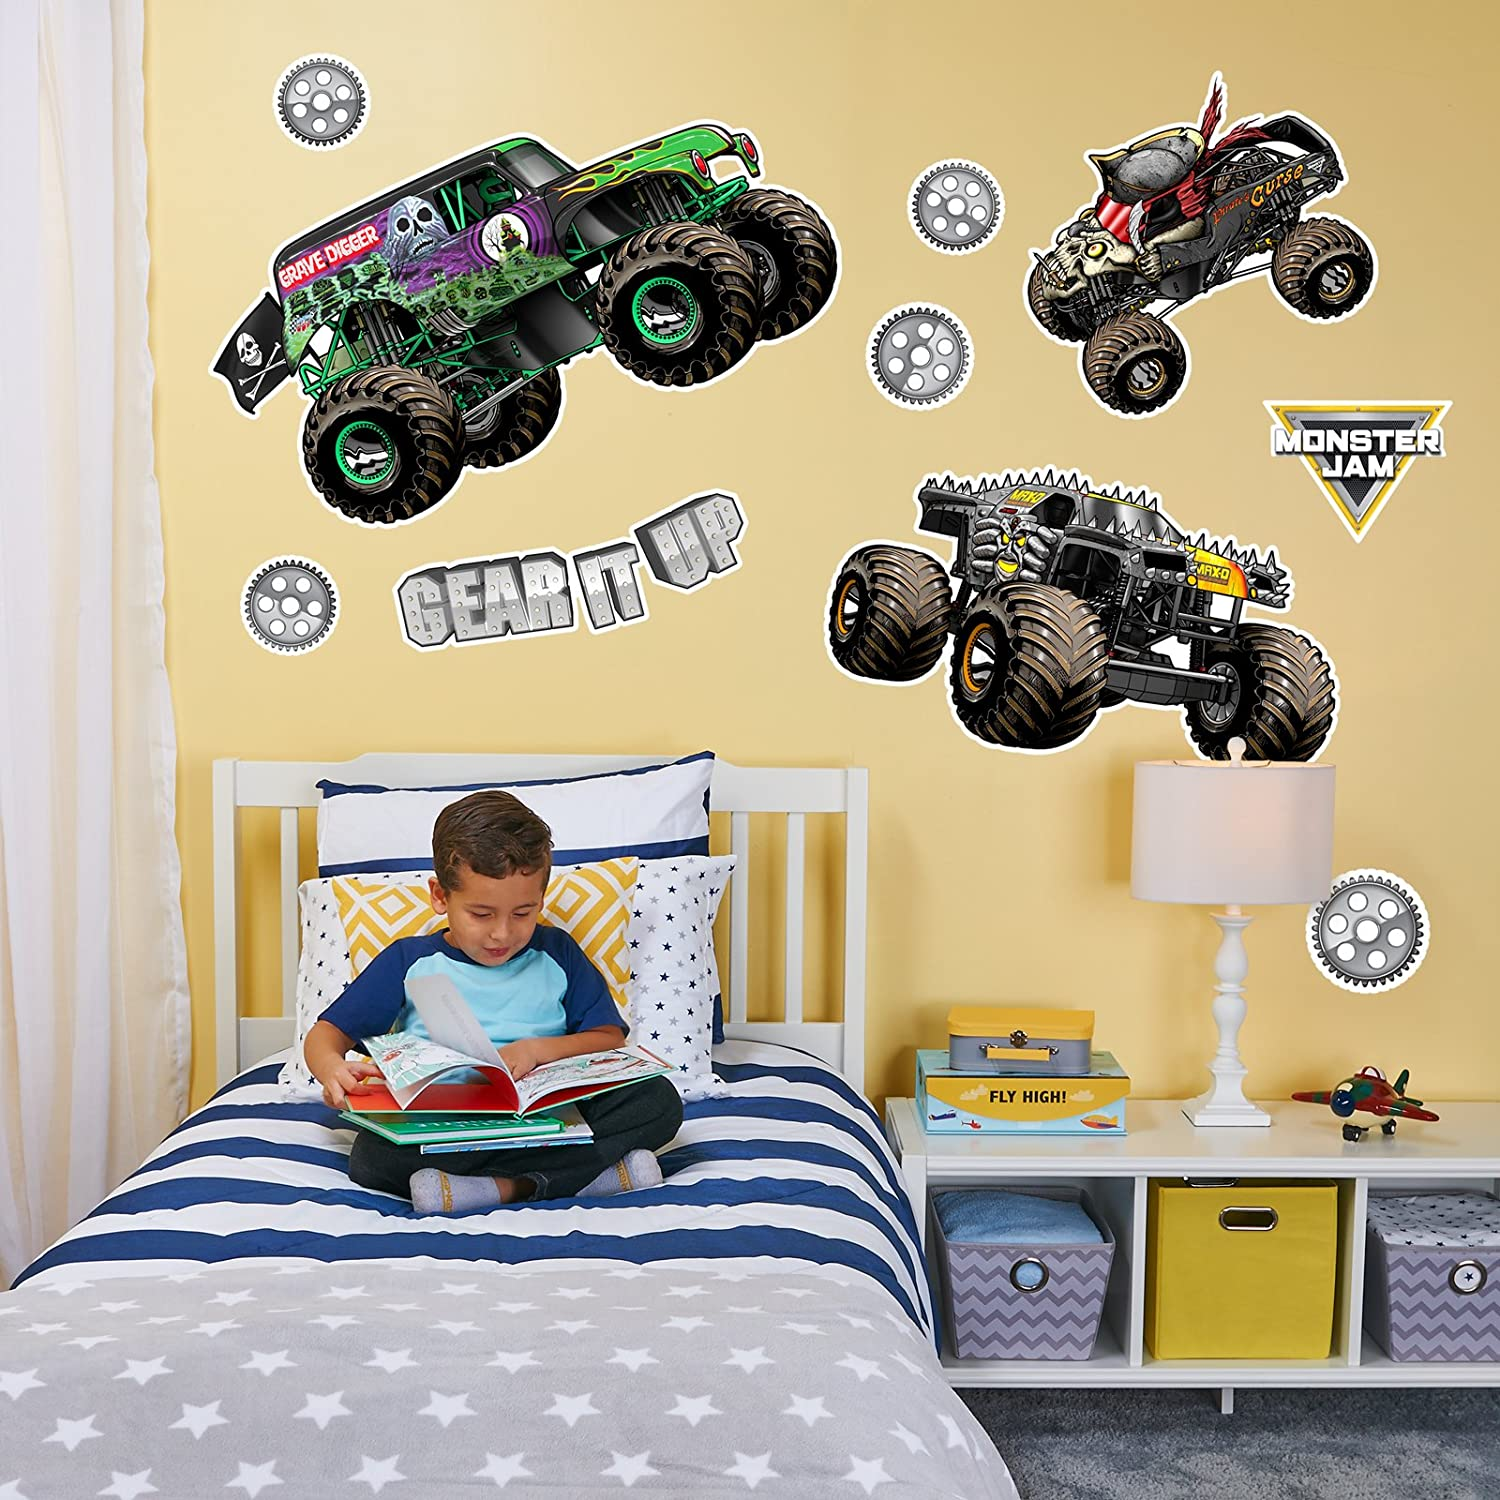 Funky Monster Jam Wall Decor Embellishment - The Wall Art ...